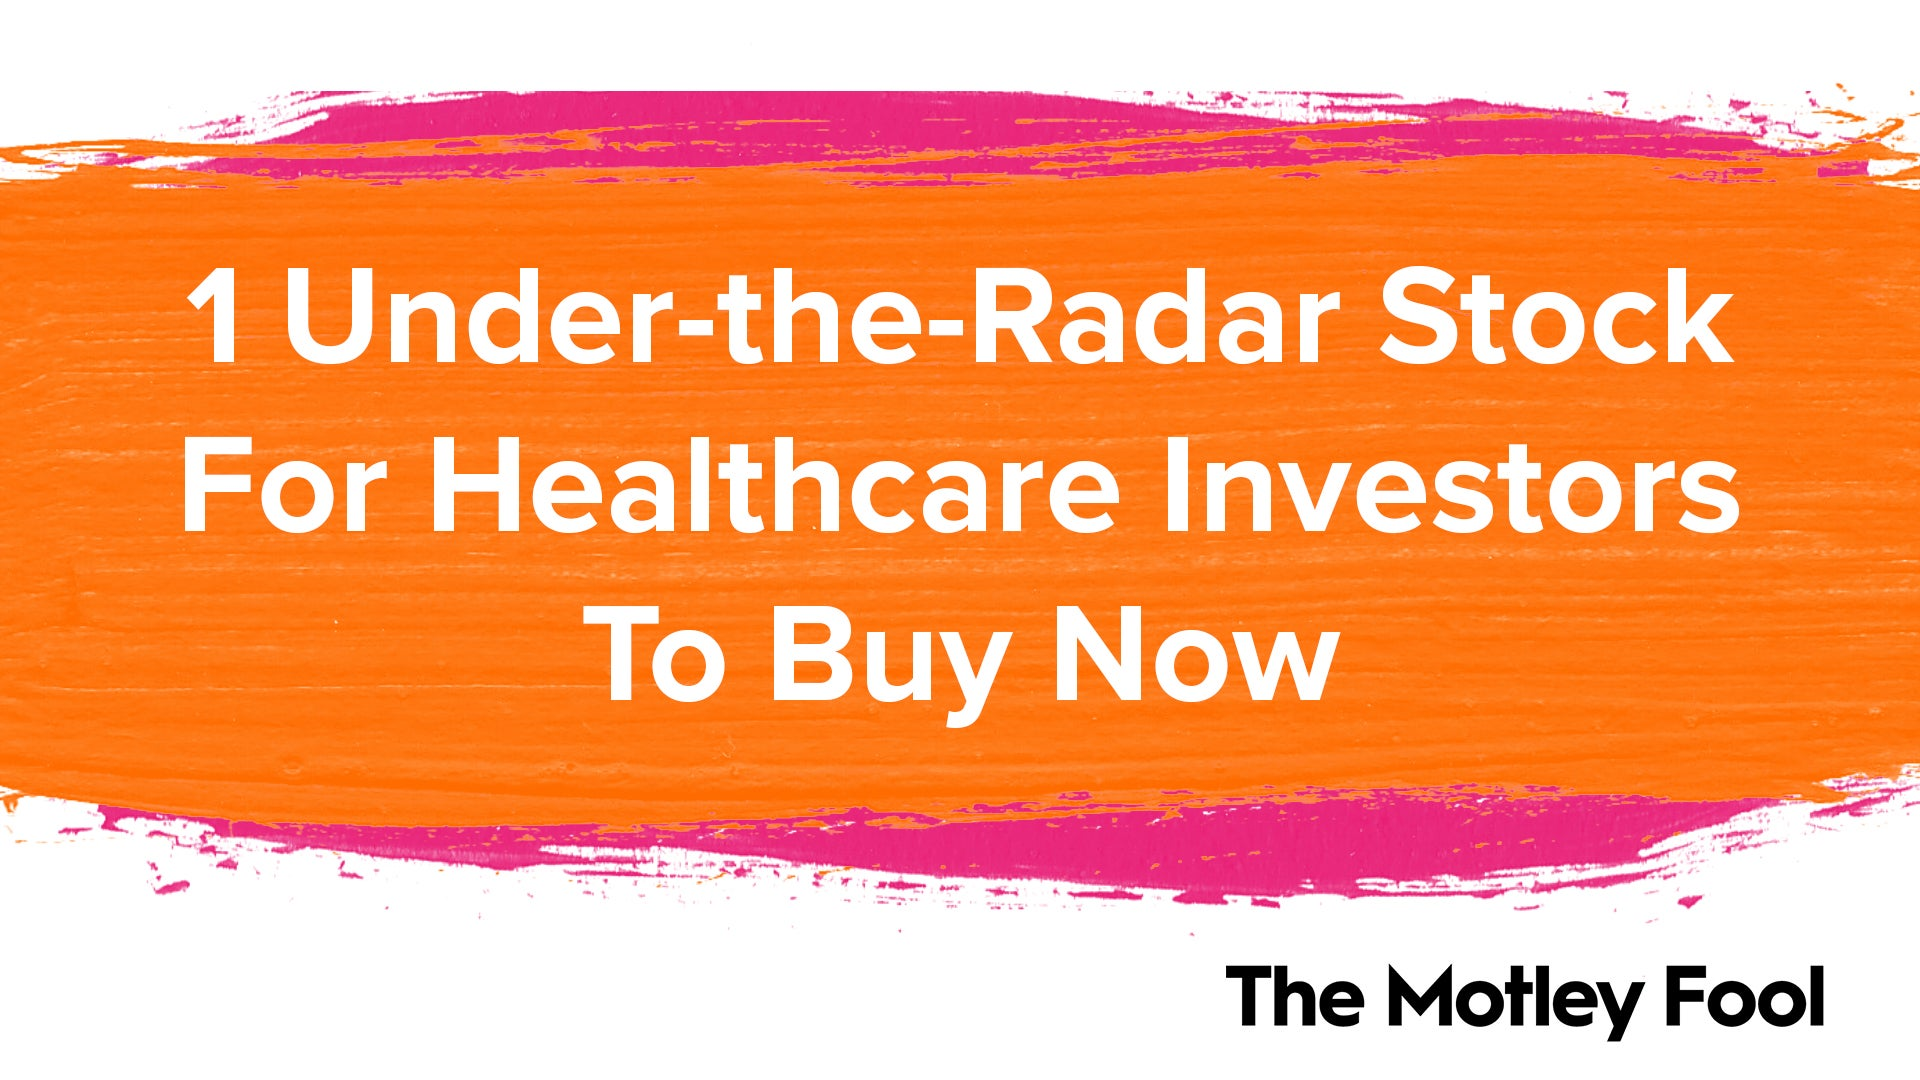 1 Under-the-Radar Stock For Healthcare Investors to Buy Now